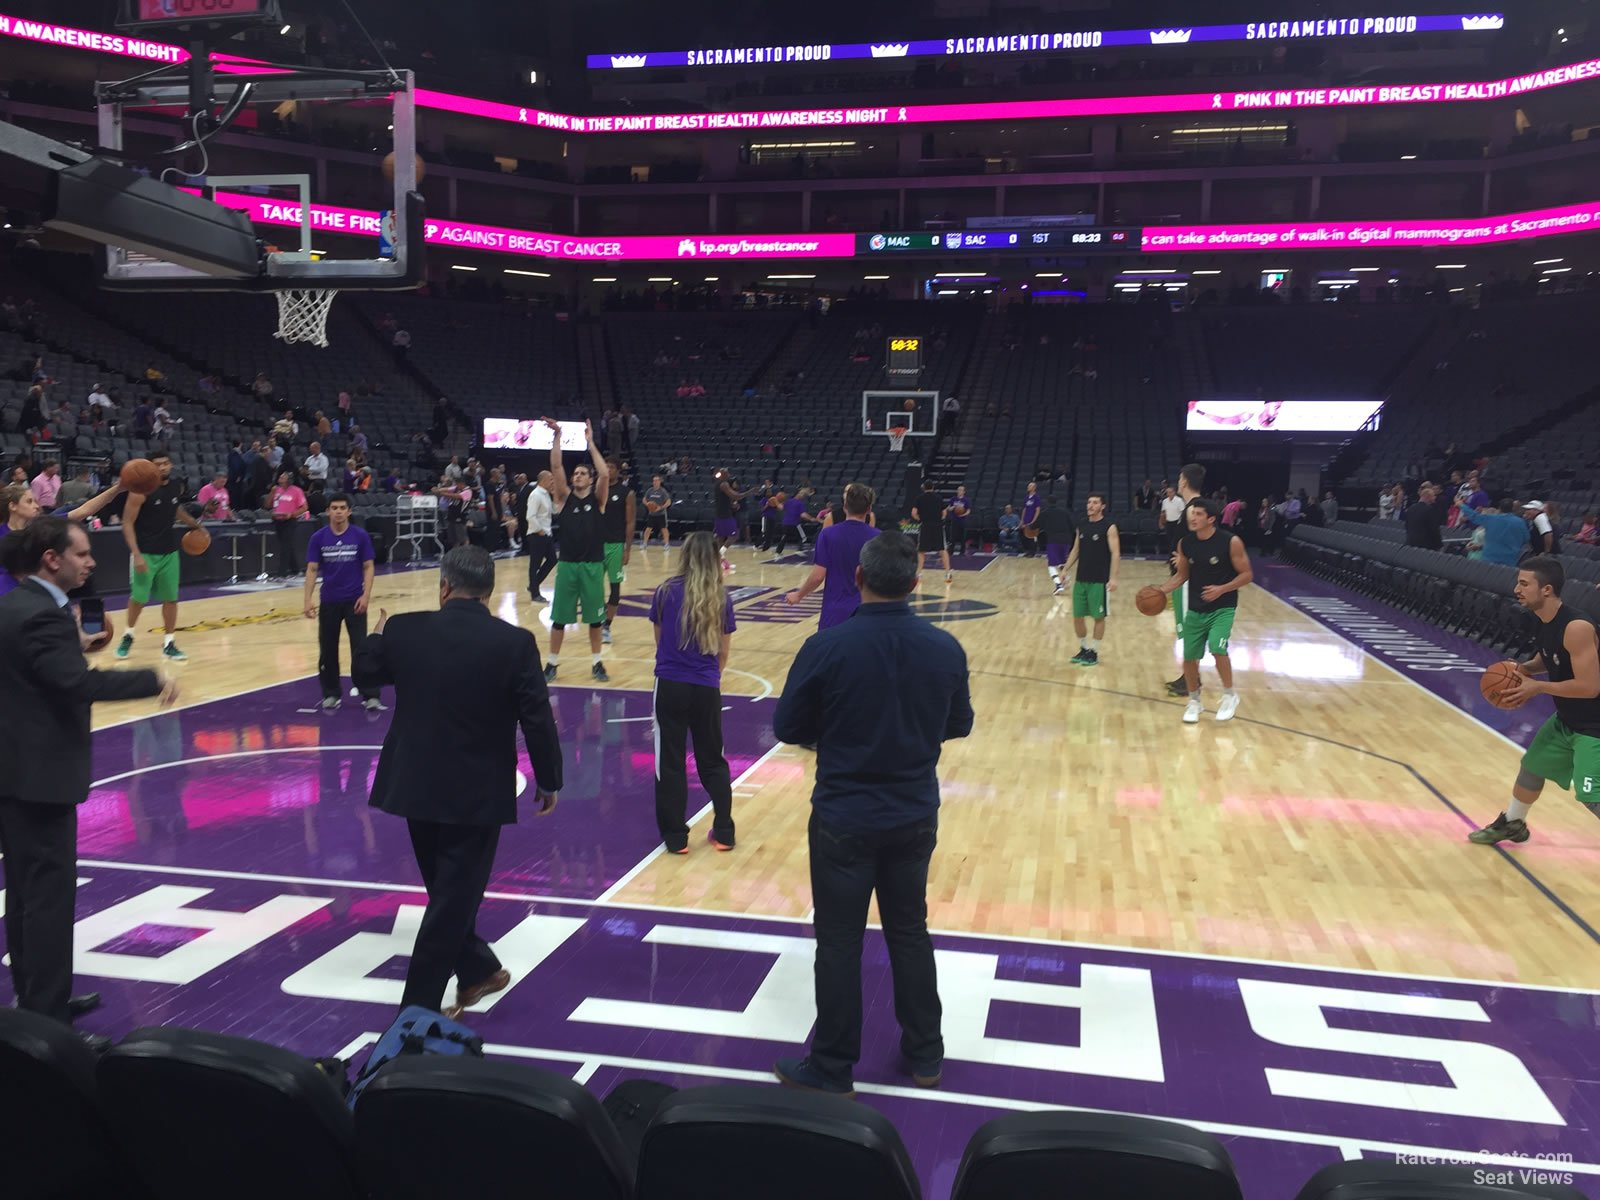 Courtside 9 seat view